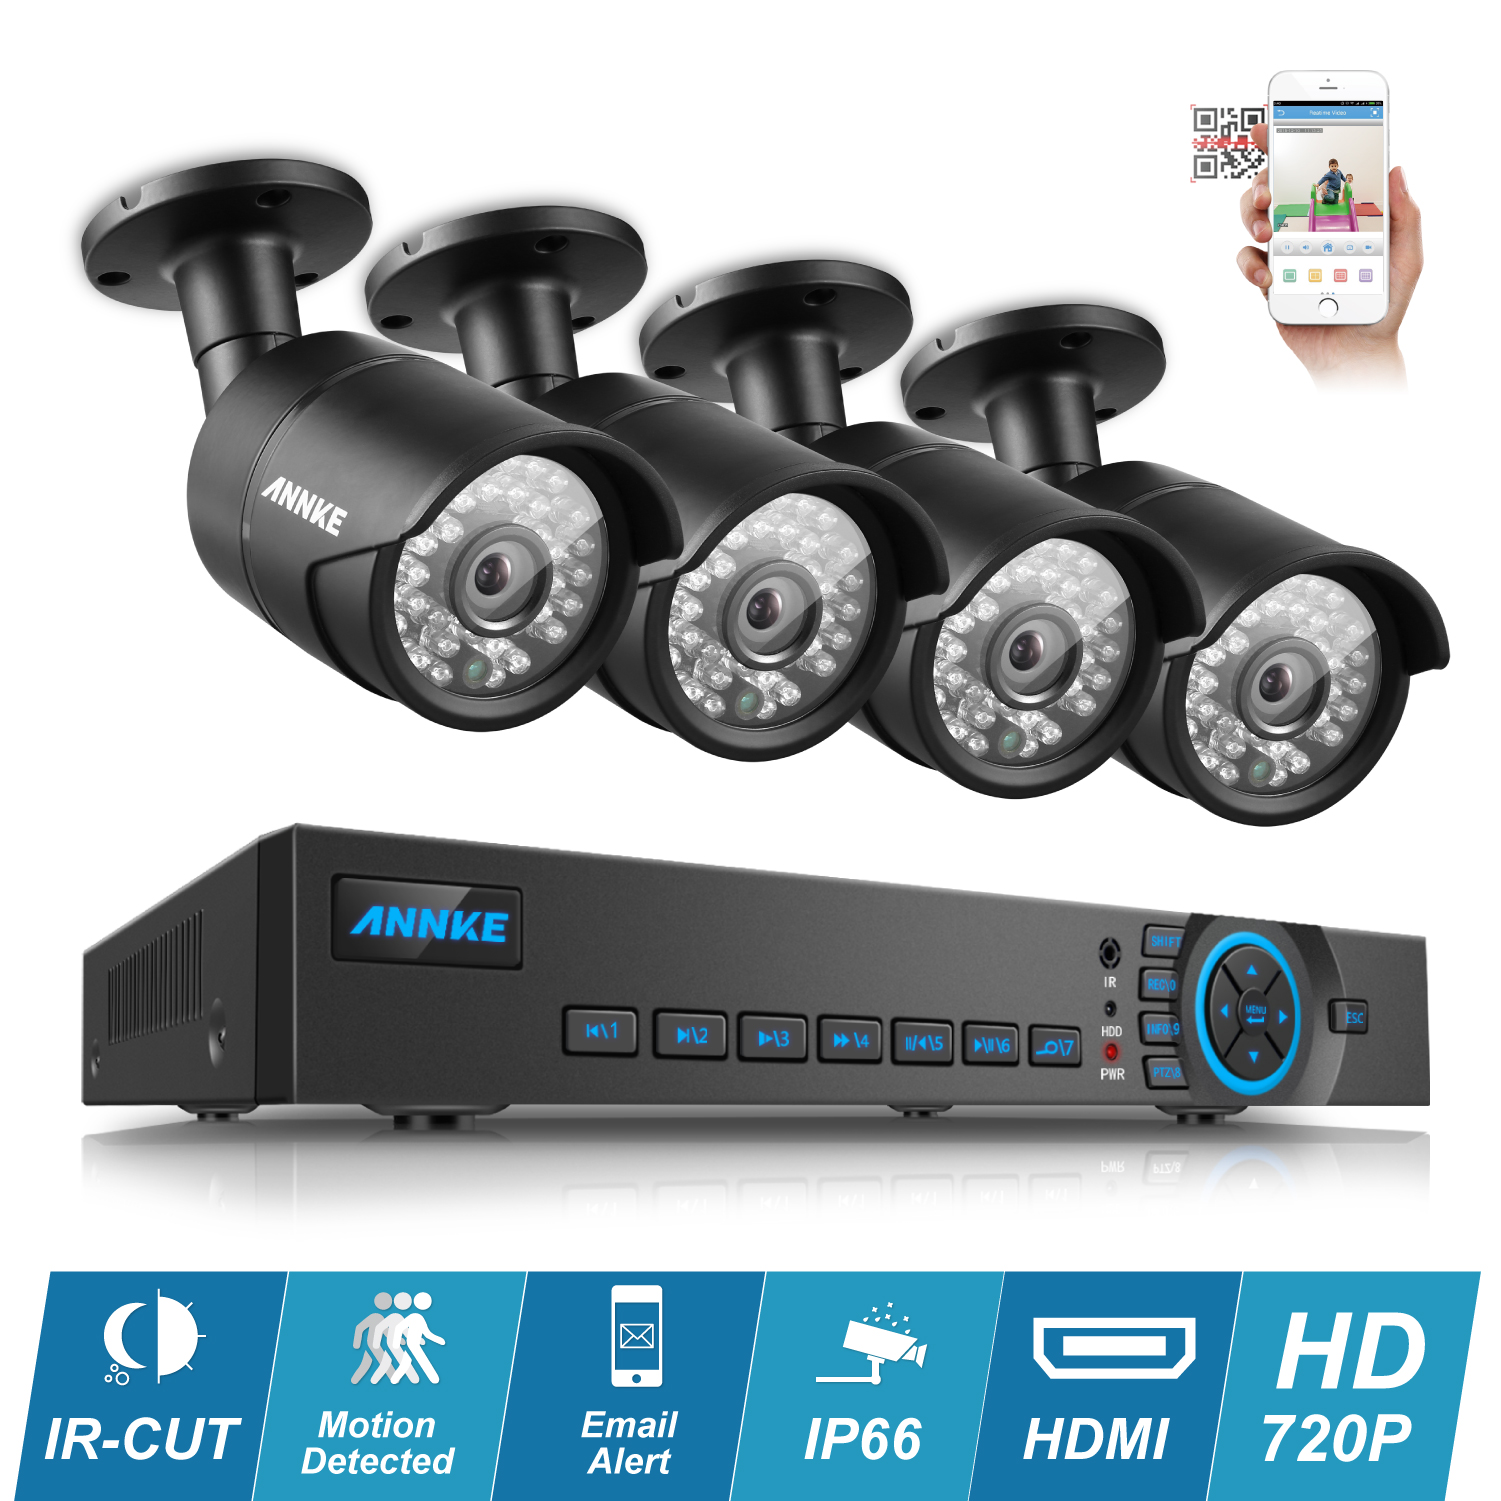 ANNKE CCTV Kit 4CH HDMI AHD DVR 4PCS Night Vision IR 720P 1200TVL HD CCTV Security Cameras Surveillance System QR